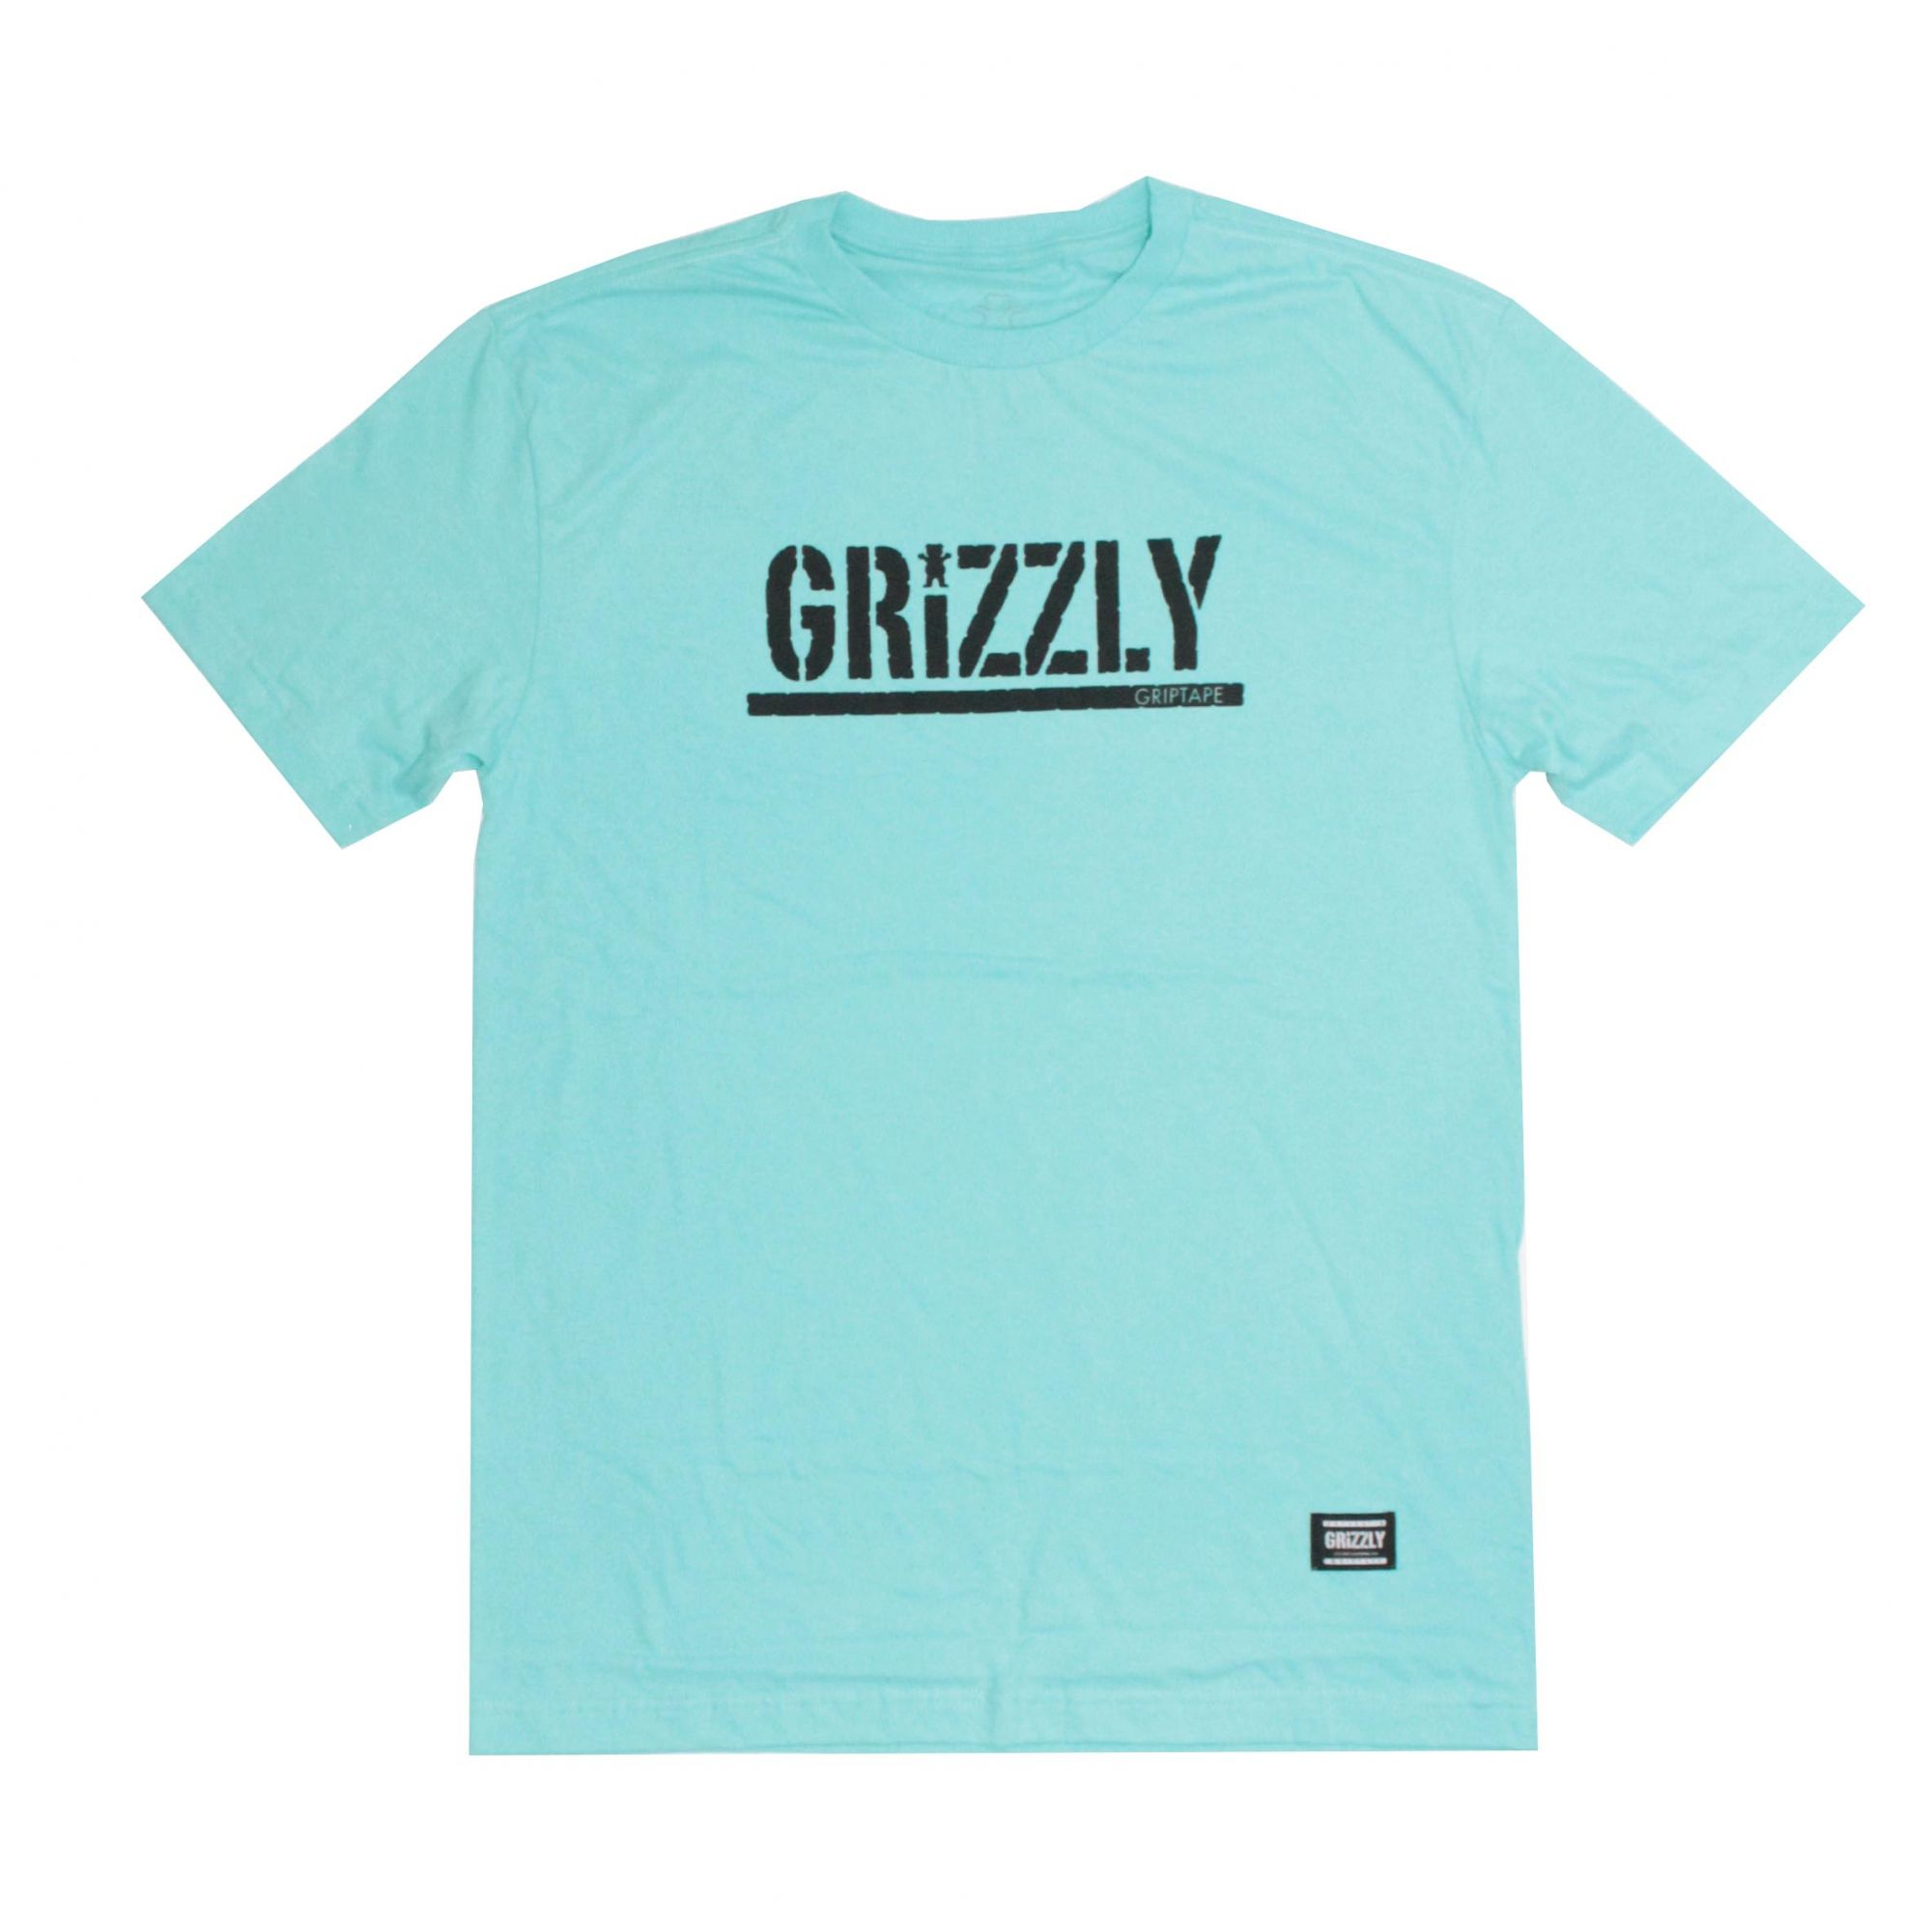 Camiseta Grizzly Stamped Verde Agua